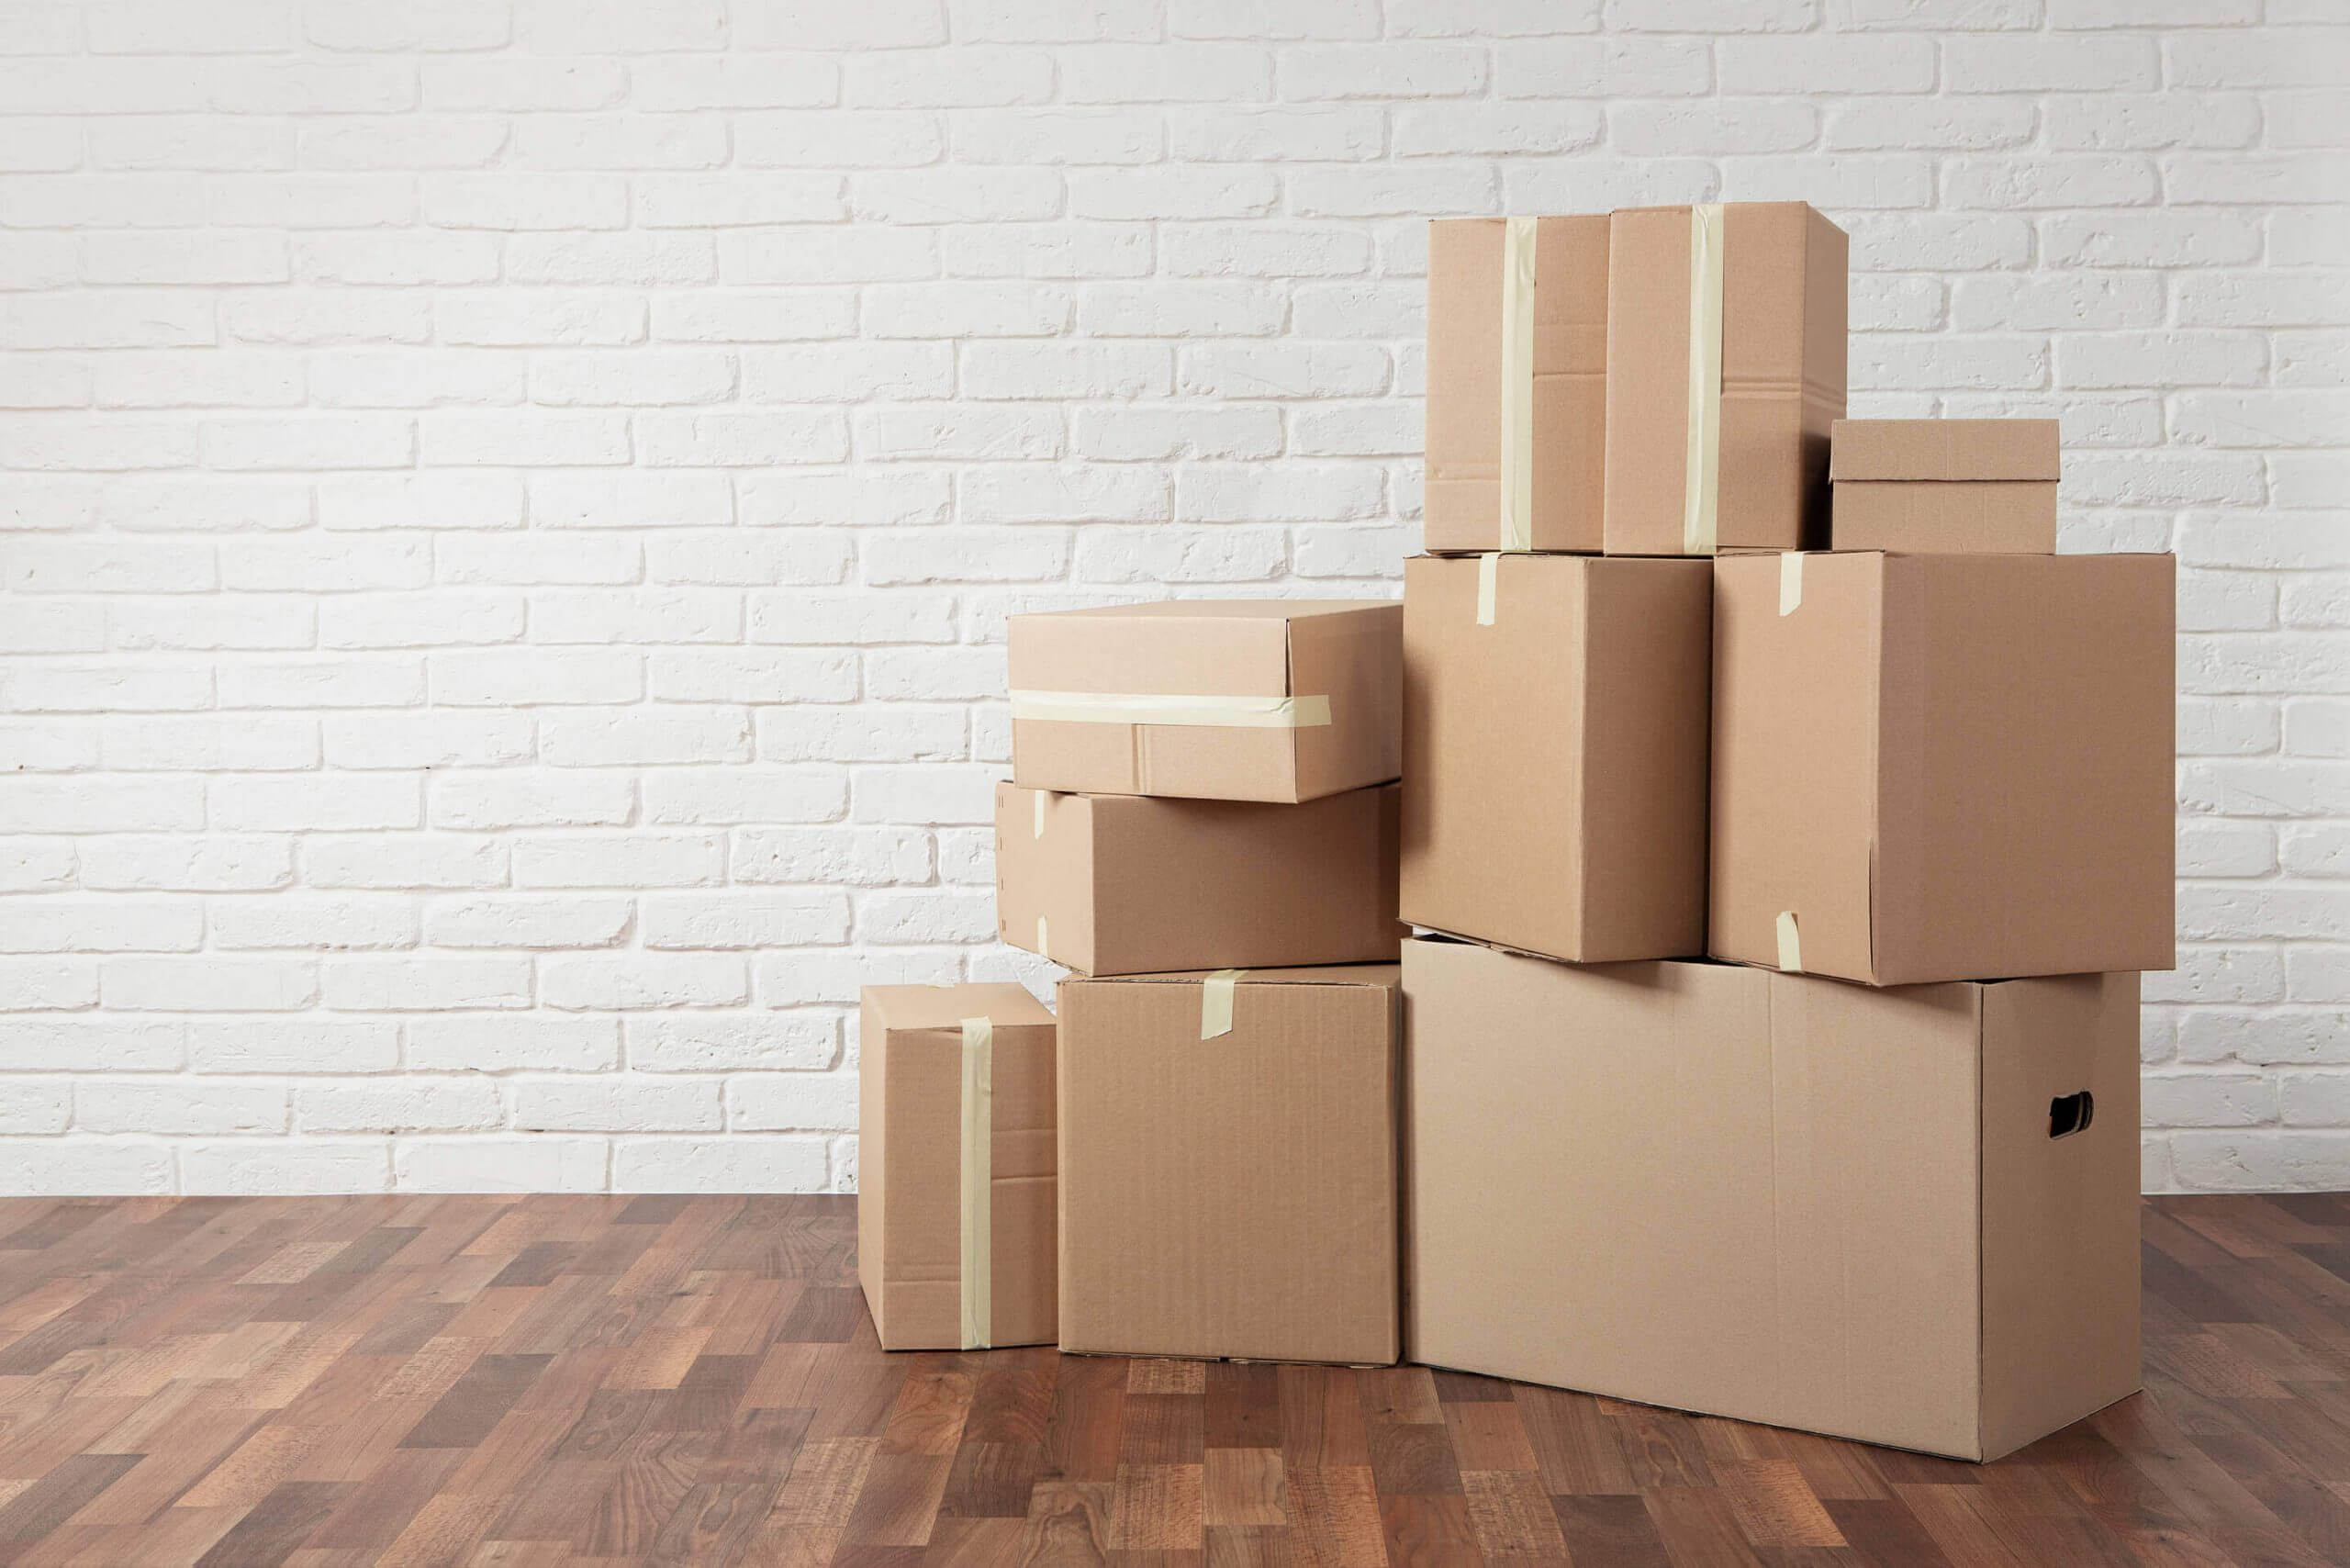 Move-in and Move-out Inspections are both important